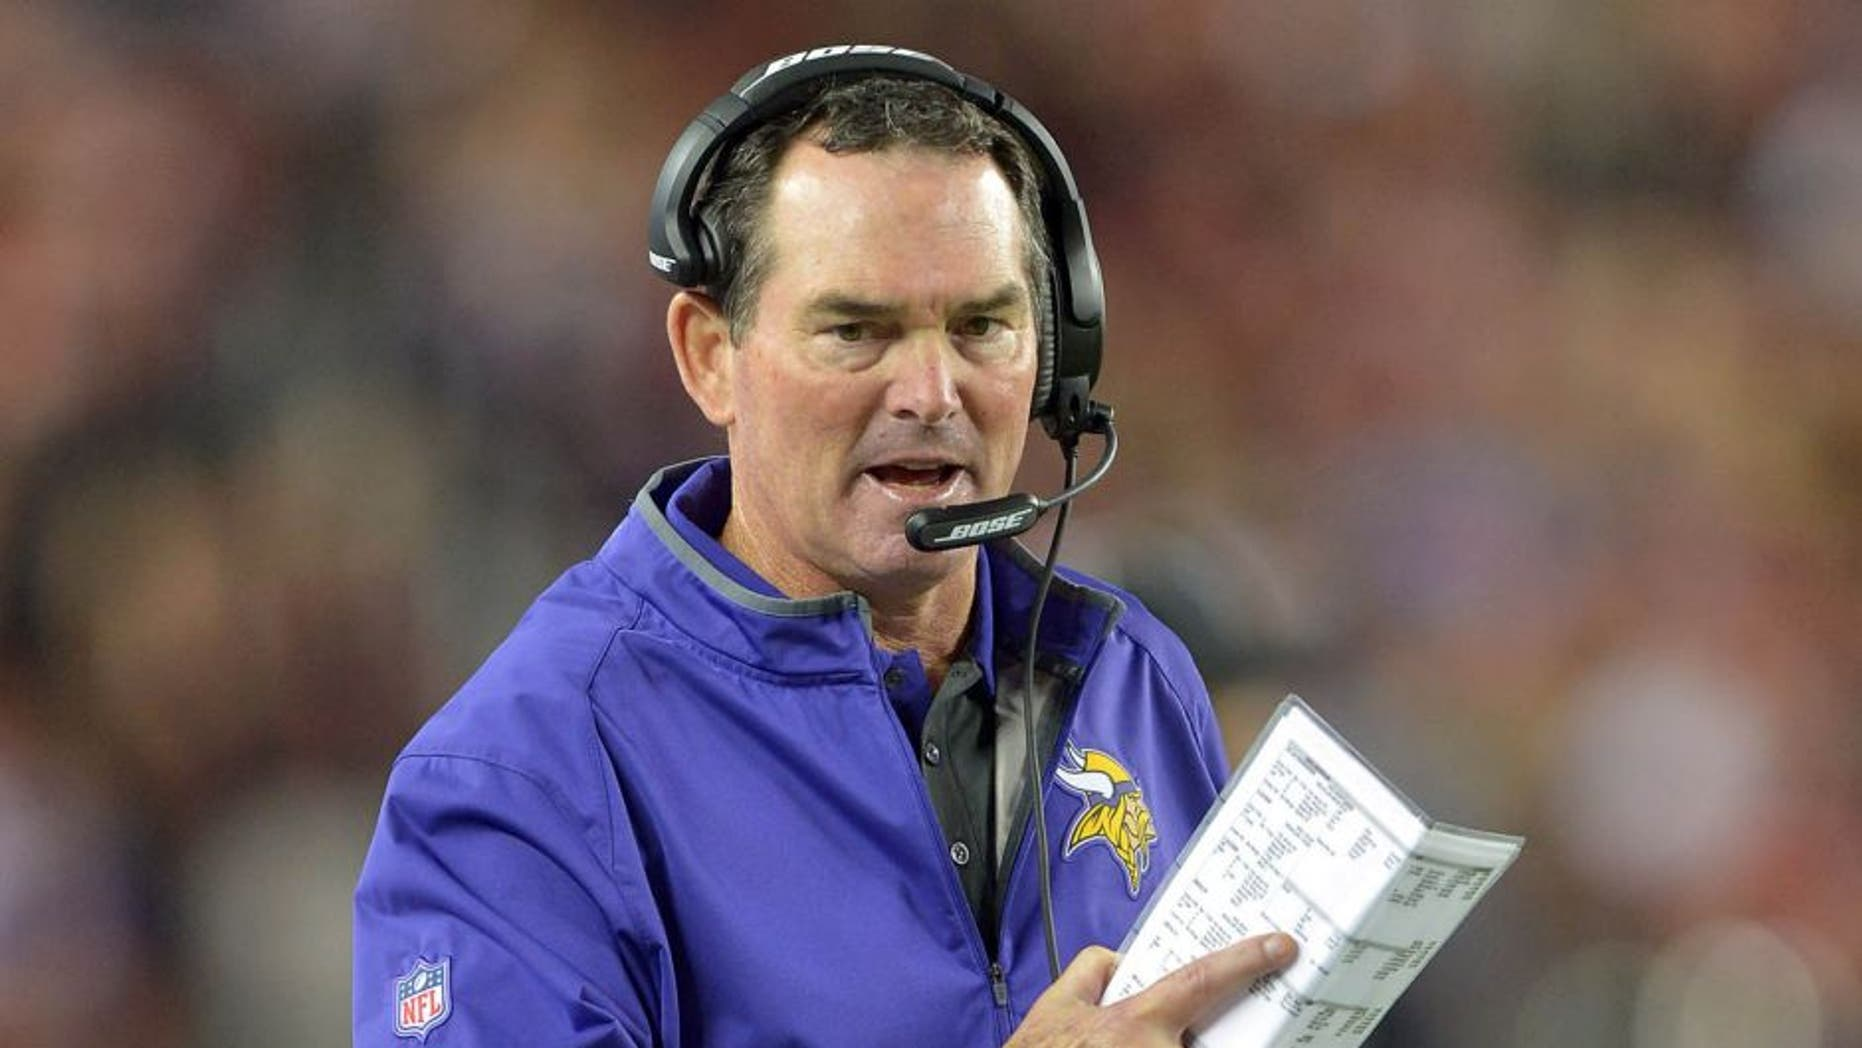 Minnesota Vikings coach Mike Zimmer reacts during the game against the San Francisco 49ers at Levi's Stadium in Santa Clara, Calif., on Monday, Sept. 14, 2015.